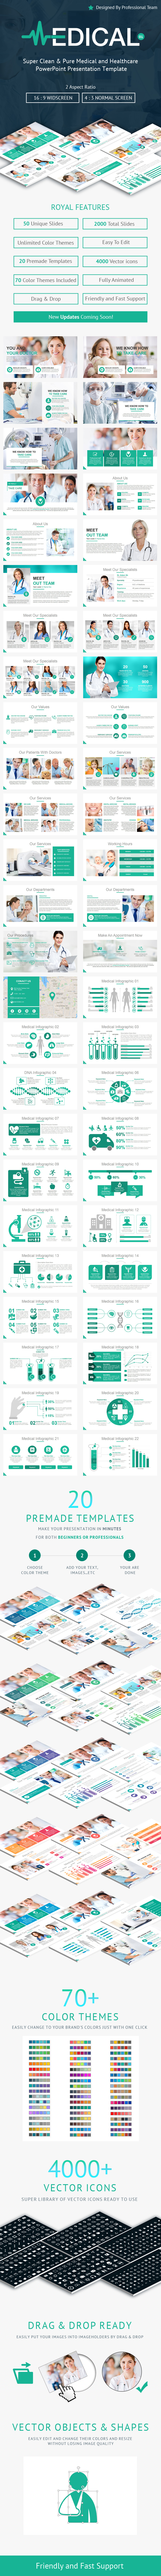 Medical and Healthcare PowerPoint Presentation Template - Creative PowerPoint Templates